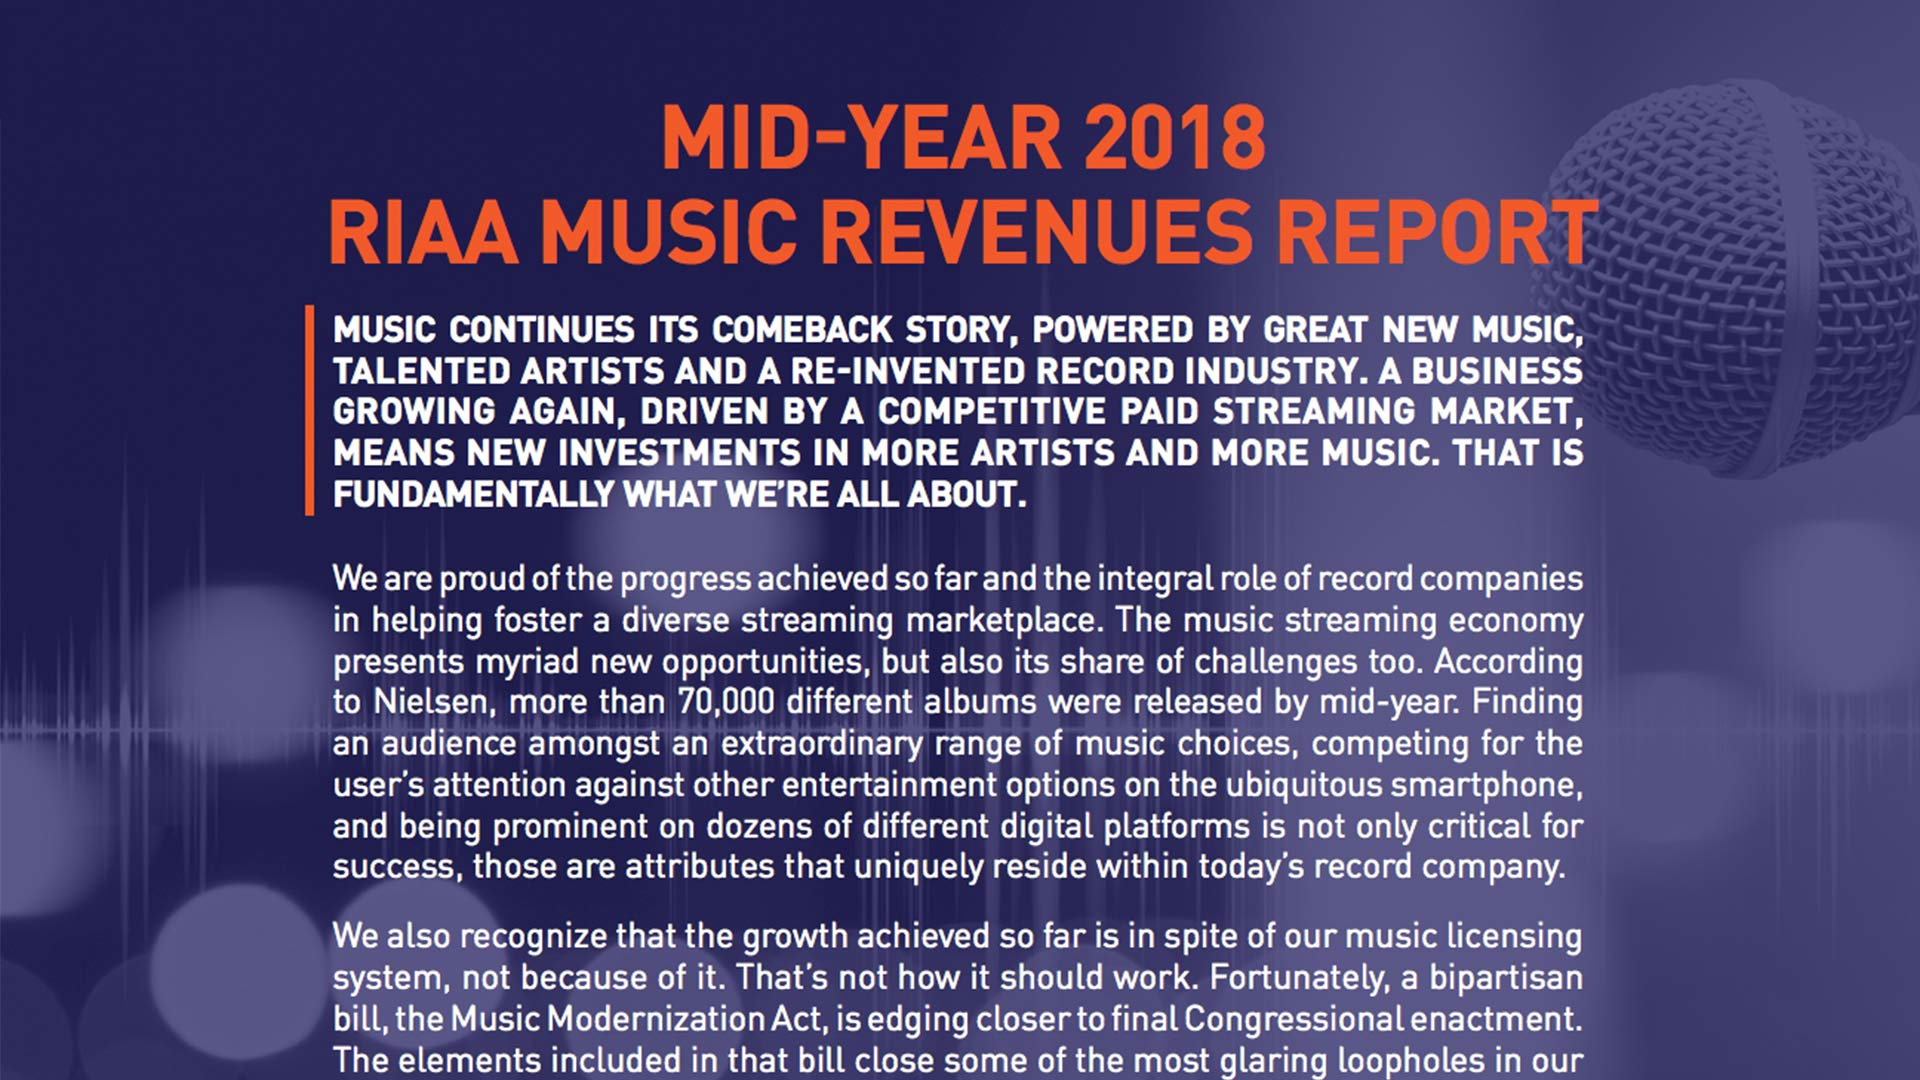 Fairness Rocks News MID-YEAR 2018 RIAA MUSIC REVENUES REPORT